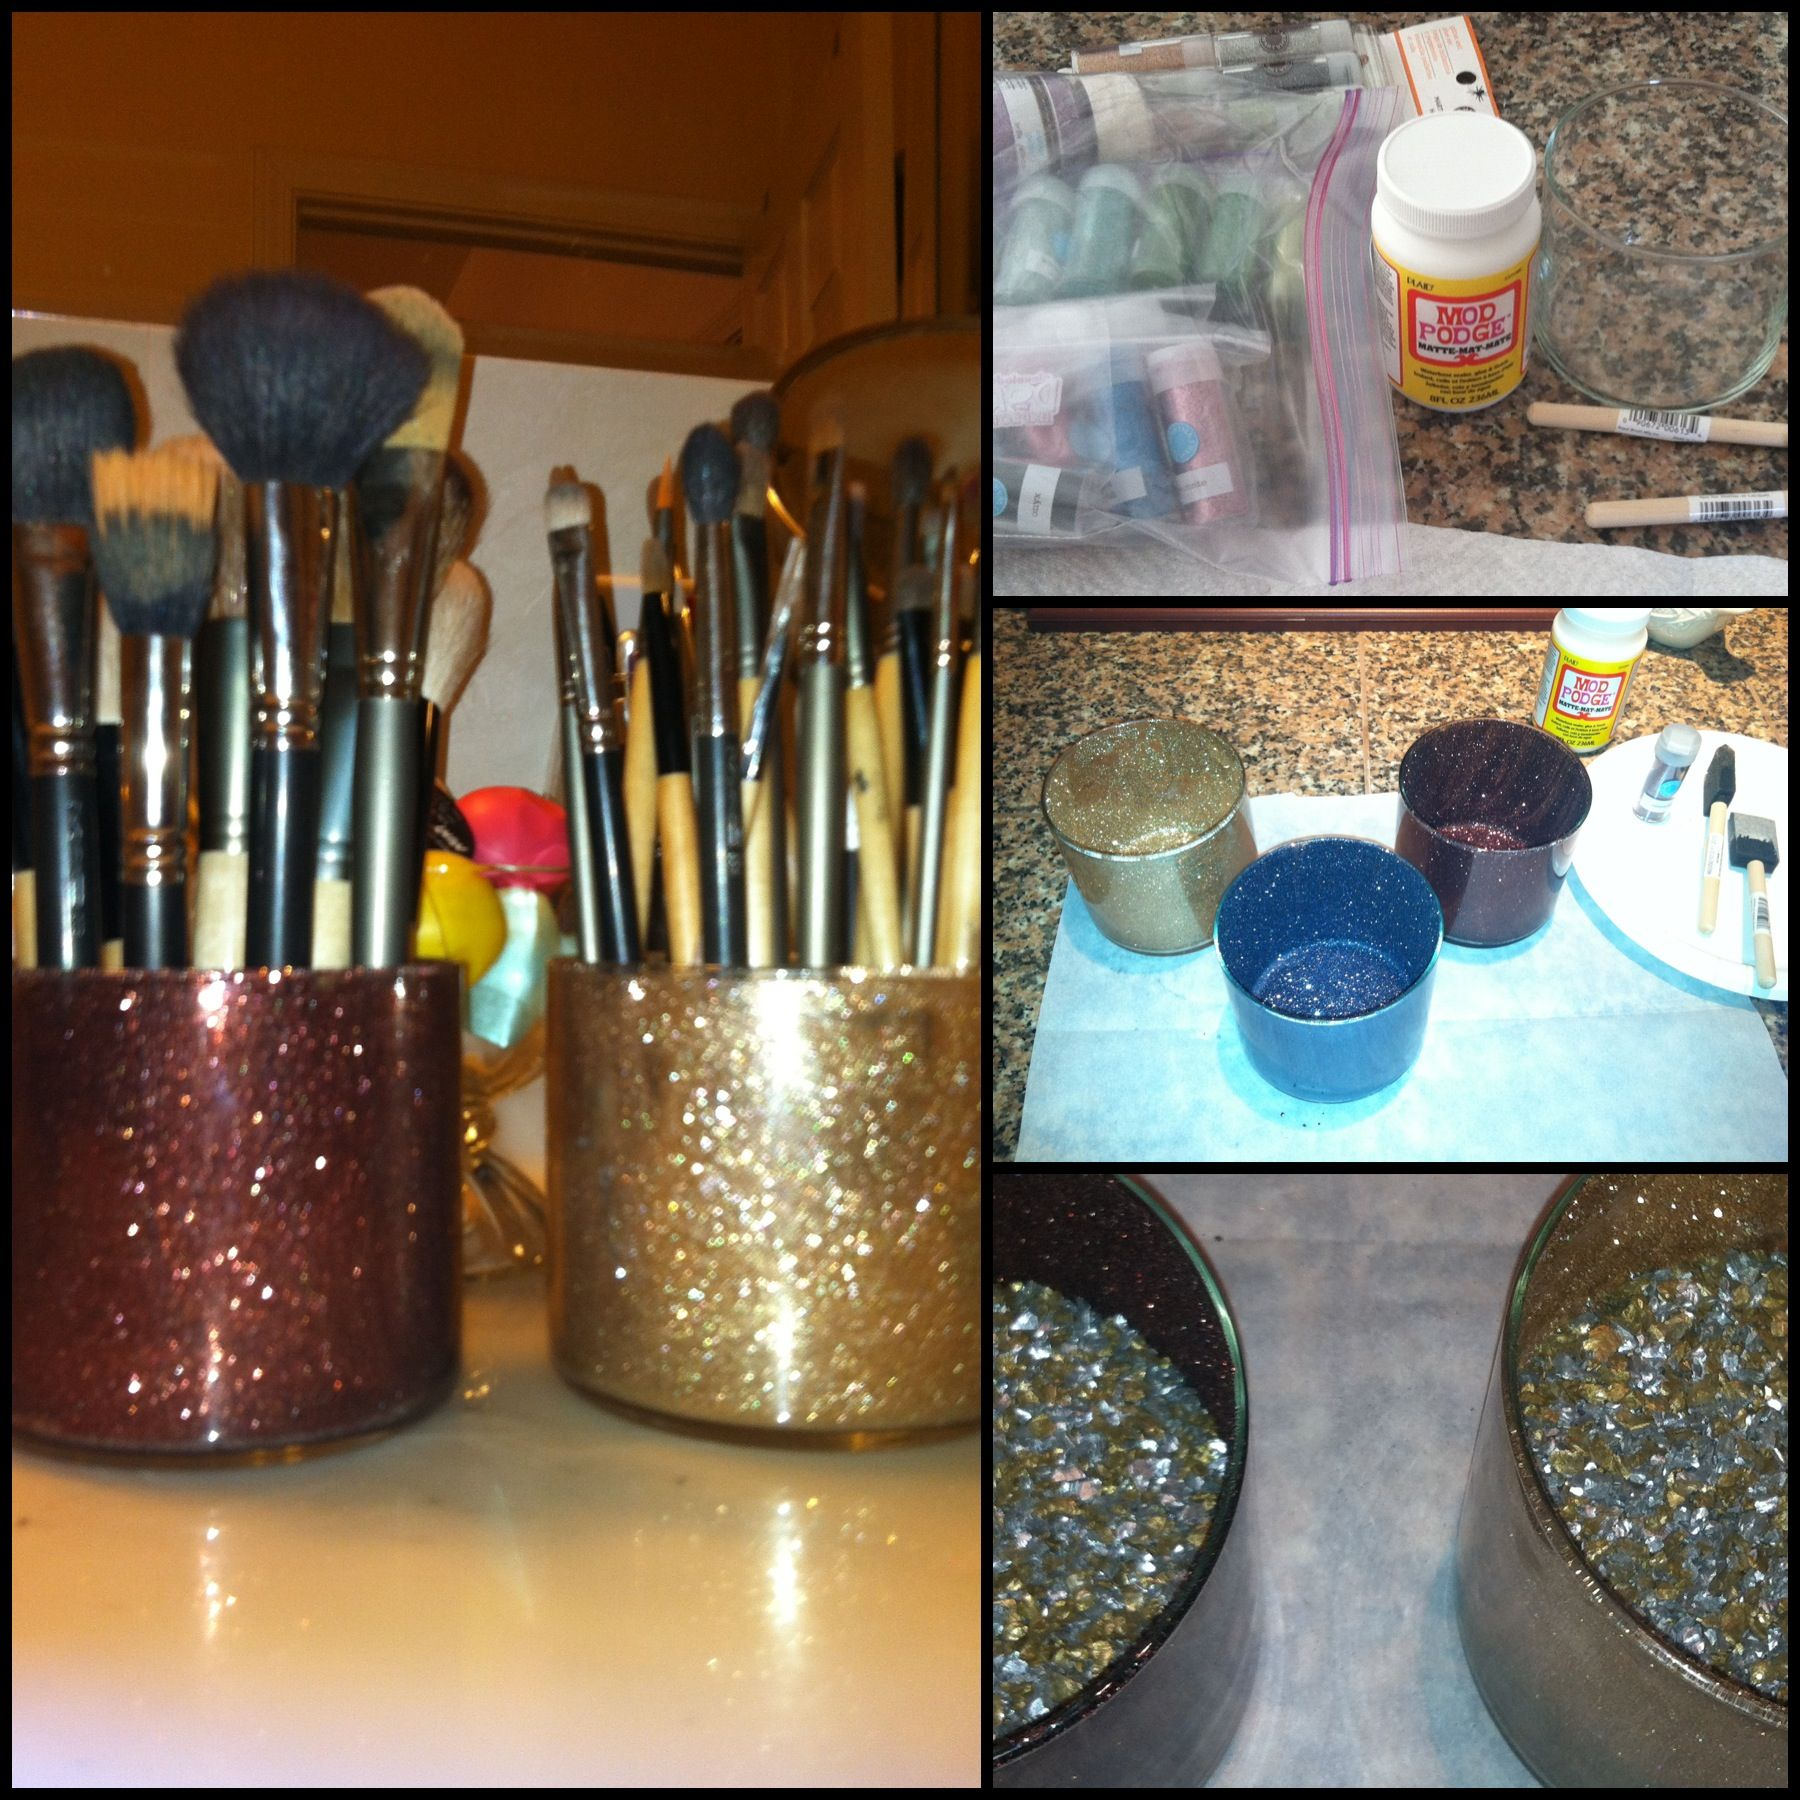 DIY makeup brush holders so cute!! Just did this and I love it!